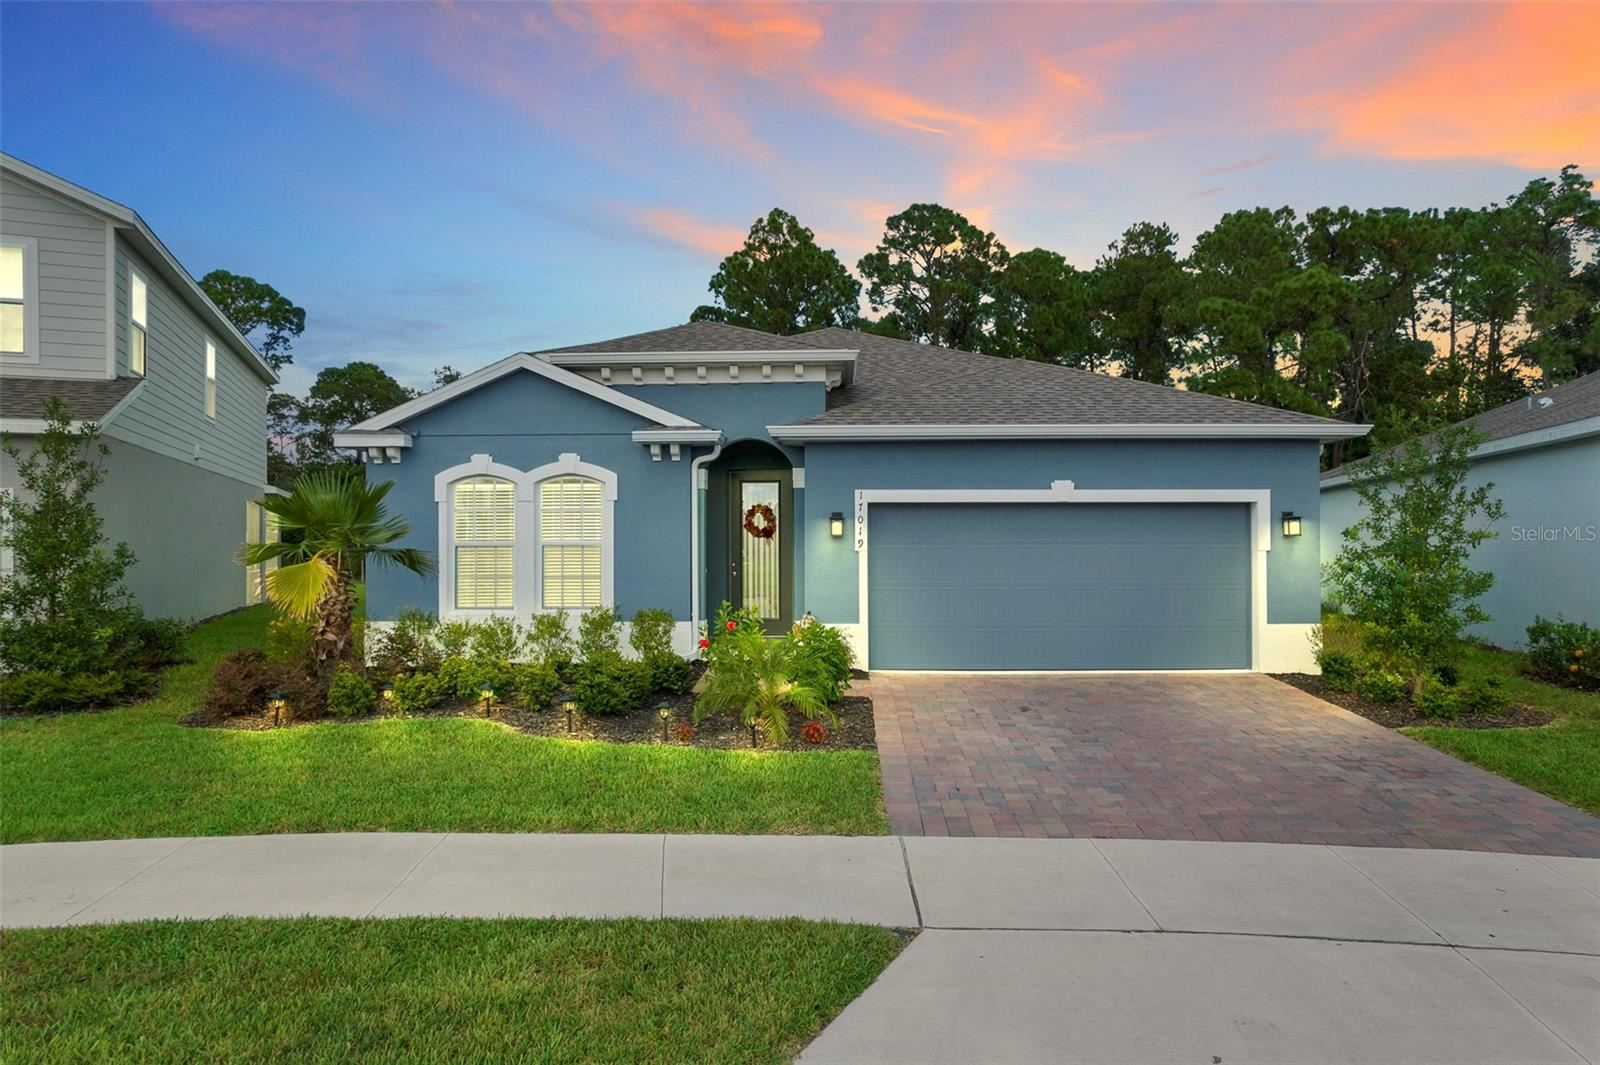 Photo for 17019 BASSWOOD LANE, CLERMONT, FL 34714 (MLS # O5978285)